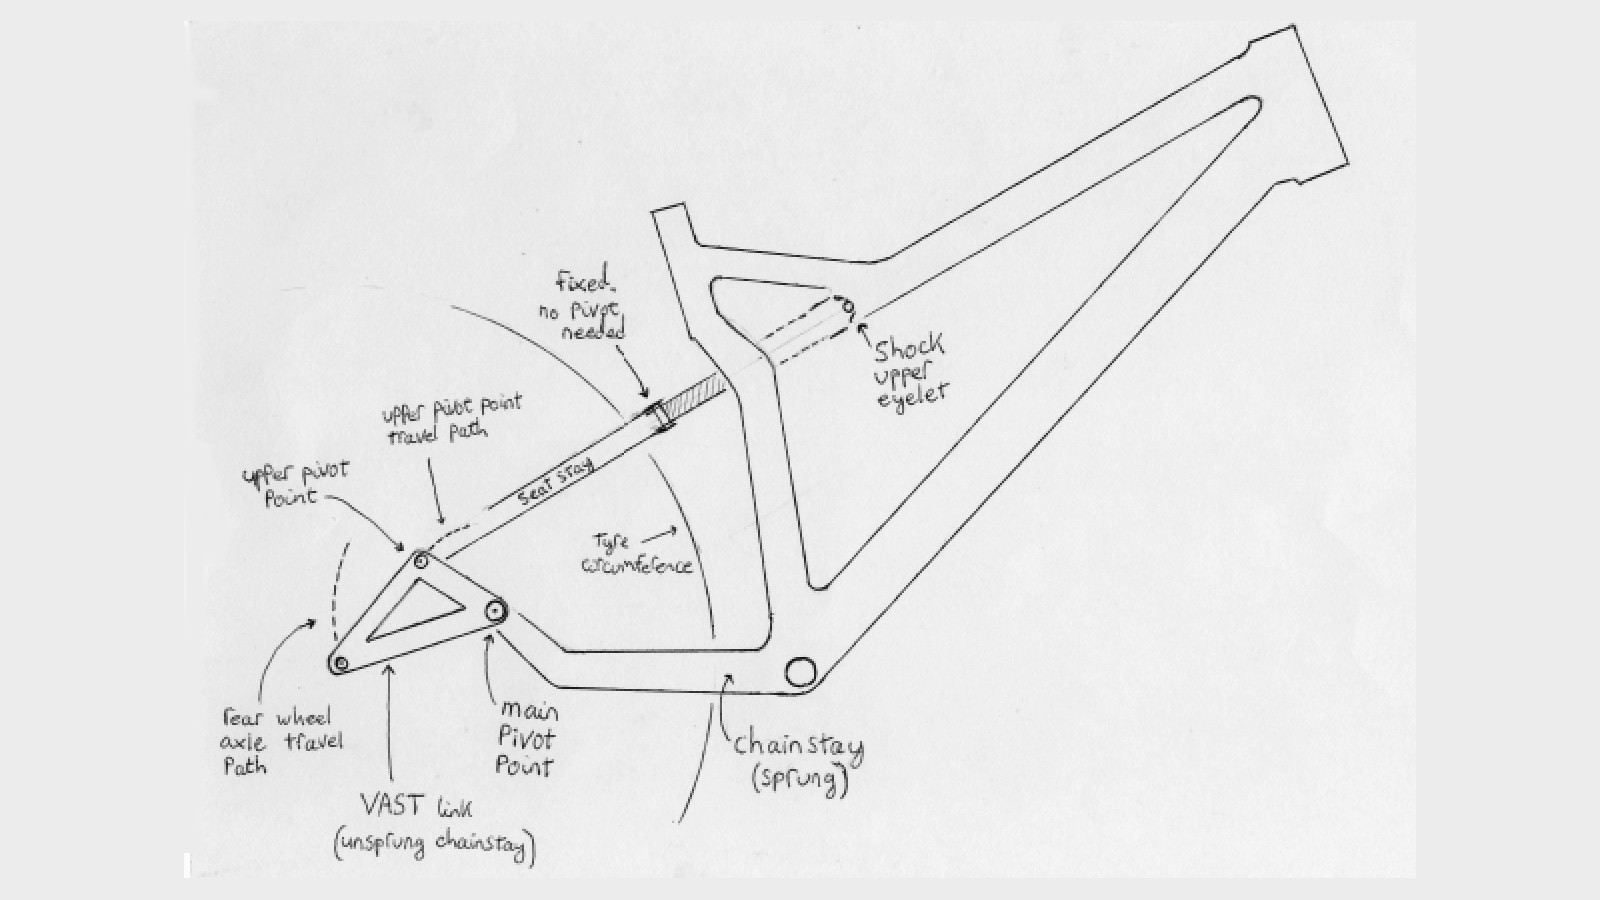 A basic drawing of the VAST Link design. The creator, Tim Southall is a self-confessed 'backyarder' when it comes to bike design